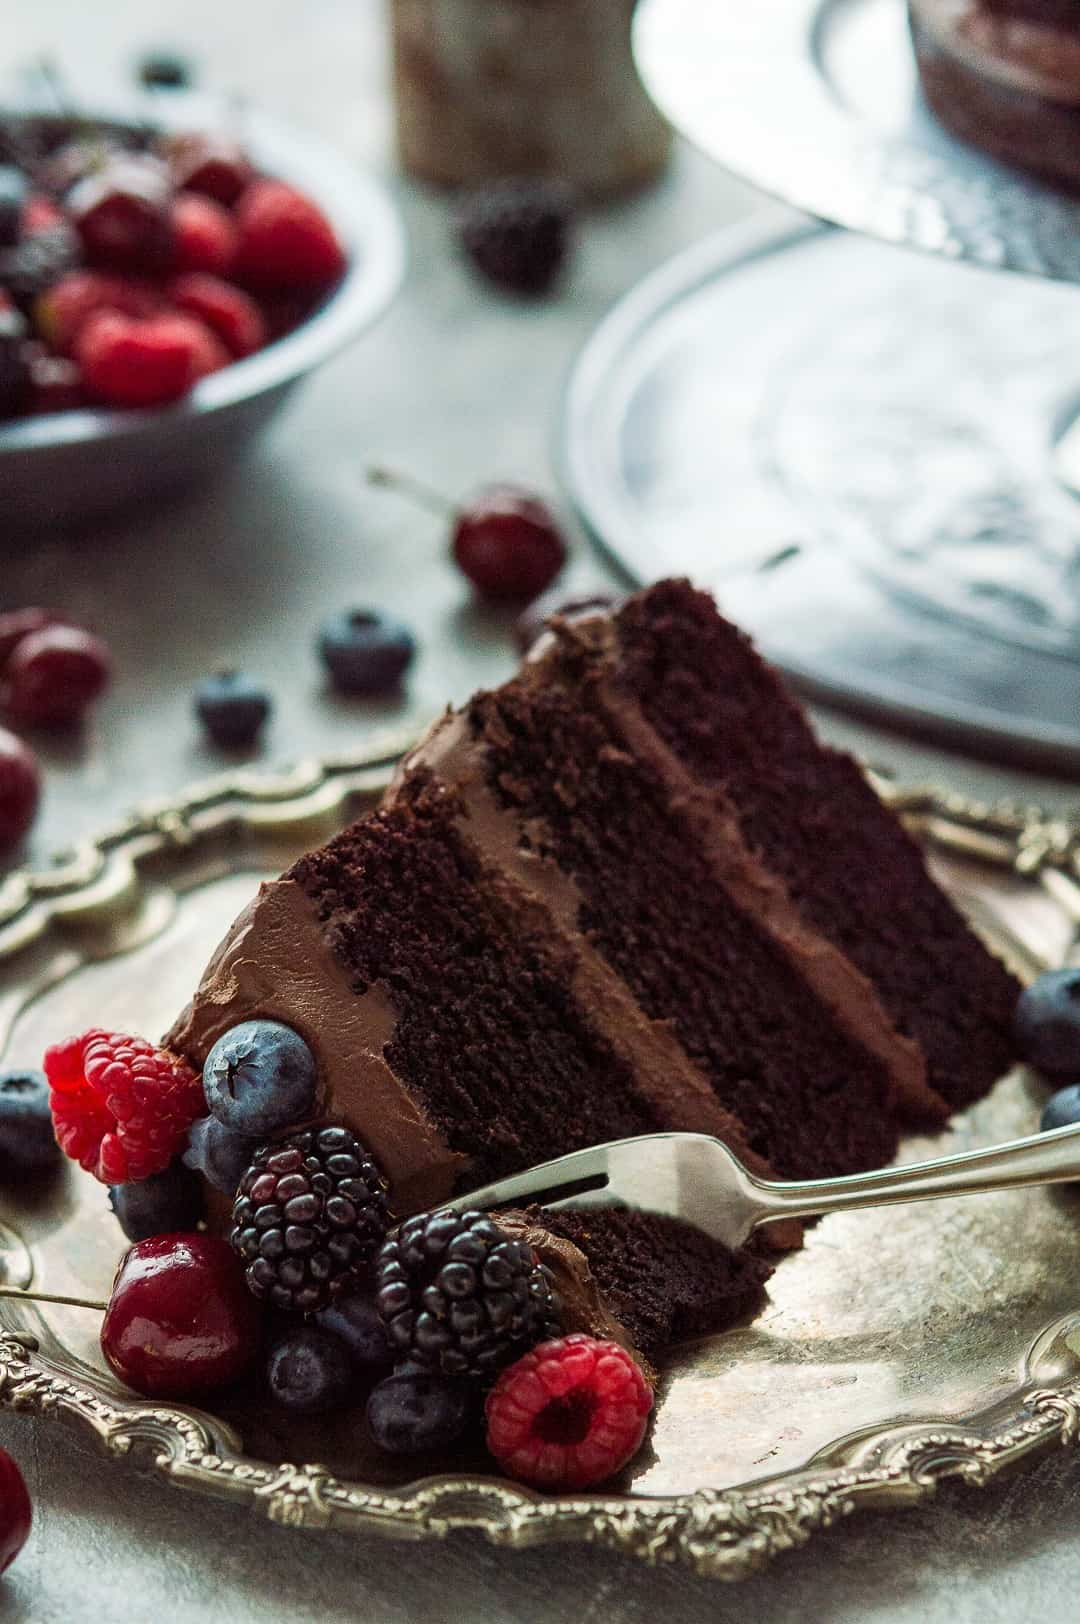 A slice of vegan chocolate fudge cake with coconut milk ganache topped with berries on a pewter plate.